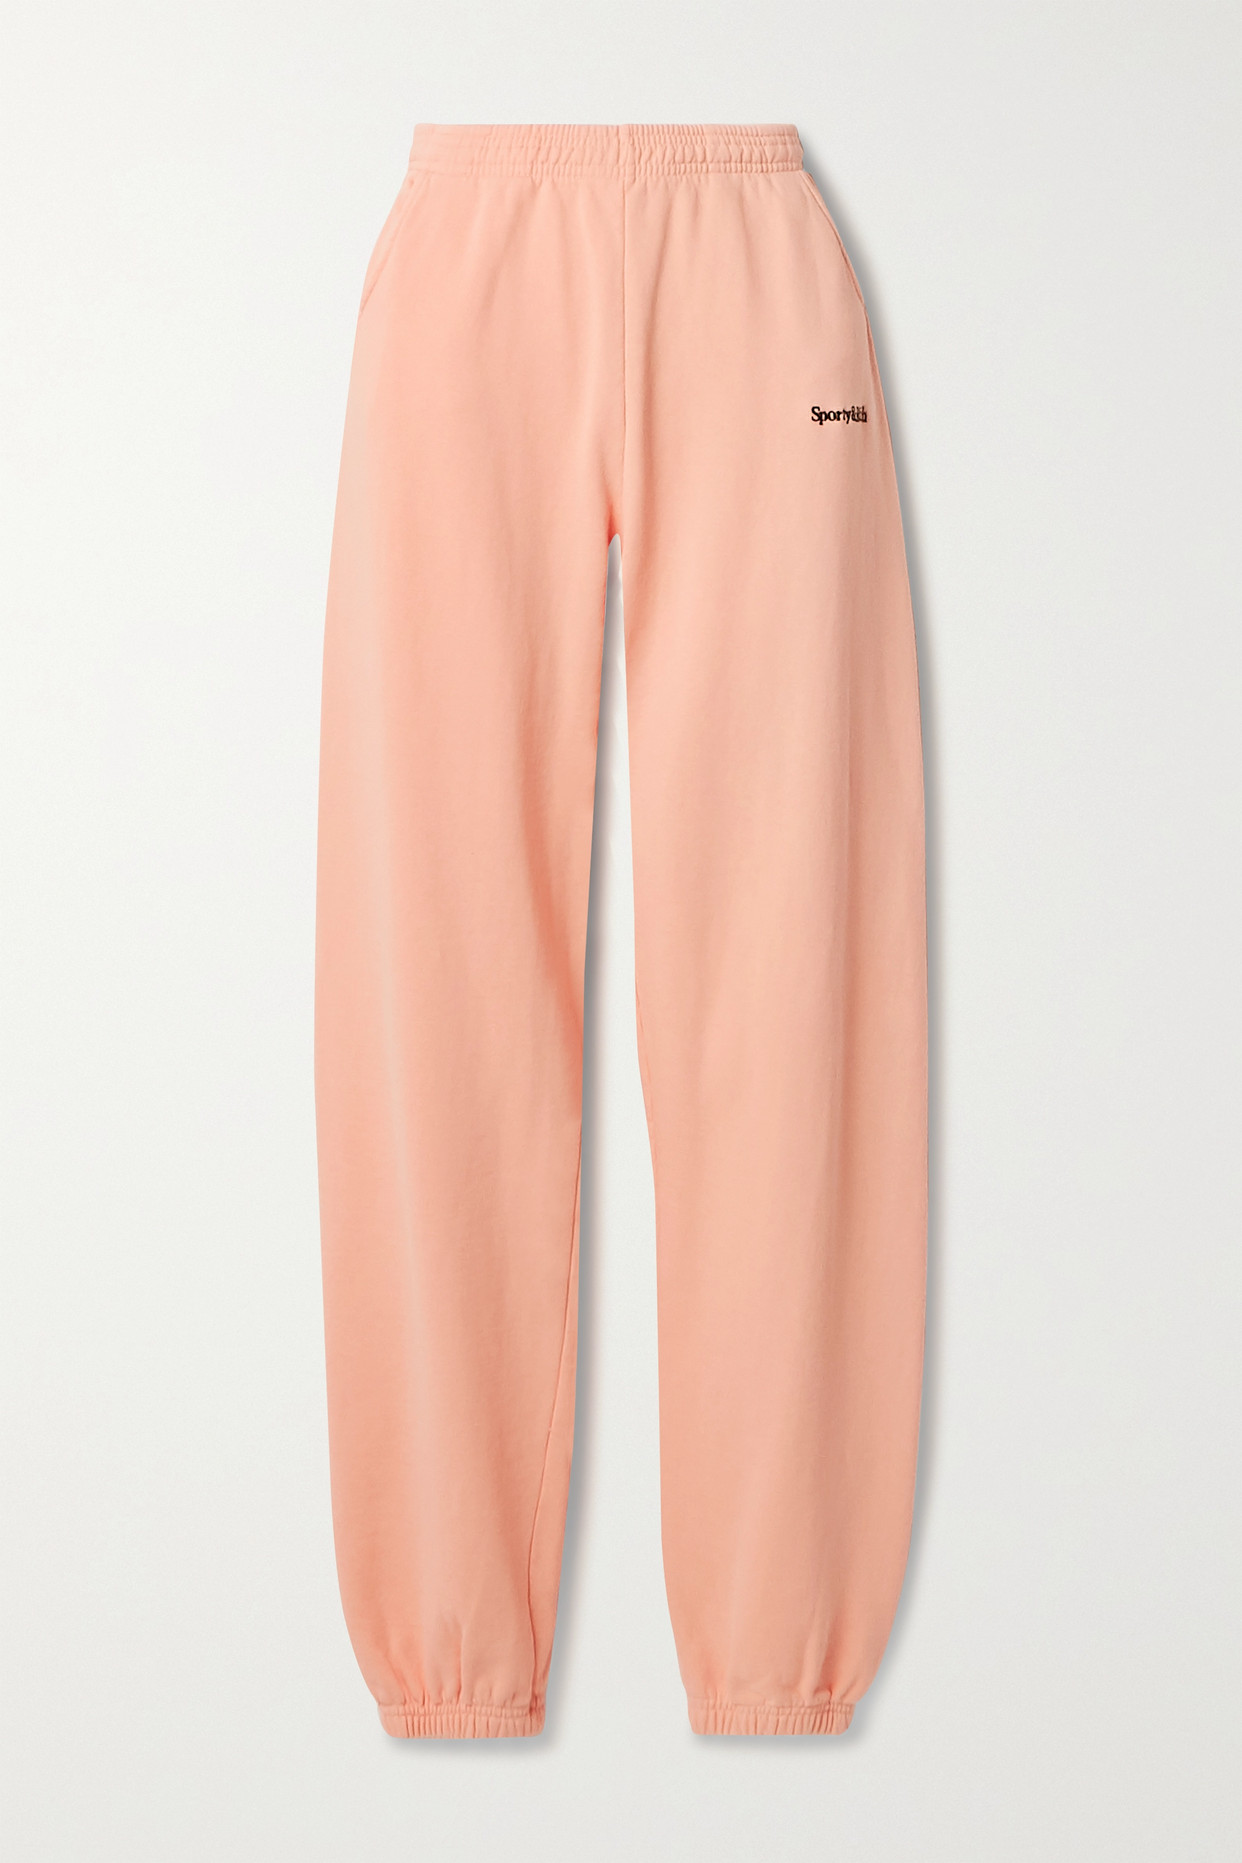 SPORTY & RICH - Embroidered Cotton-jersey Track Pants - Orange - small